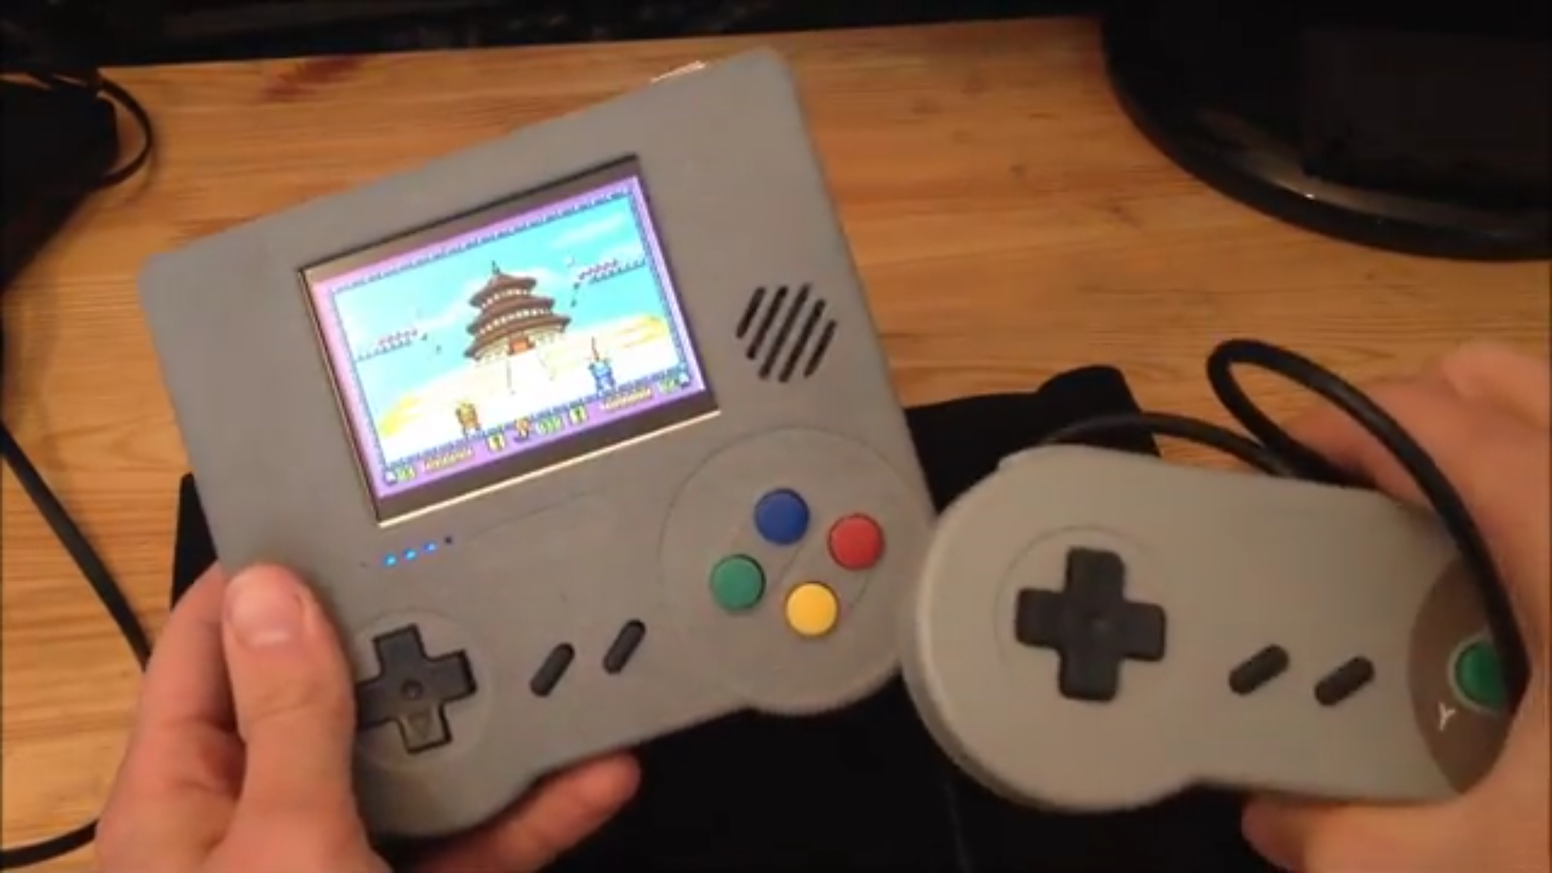 Raspi Boy : Retro handheld emulation console, electronic kit by